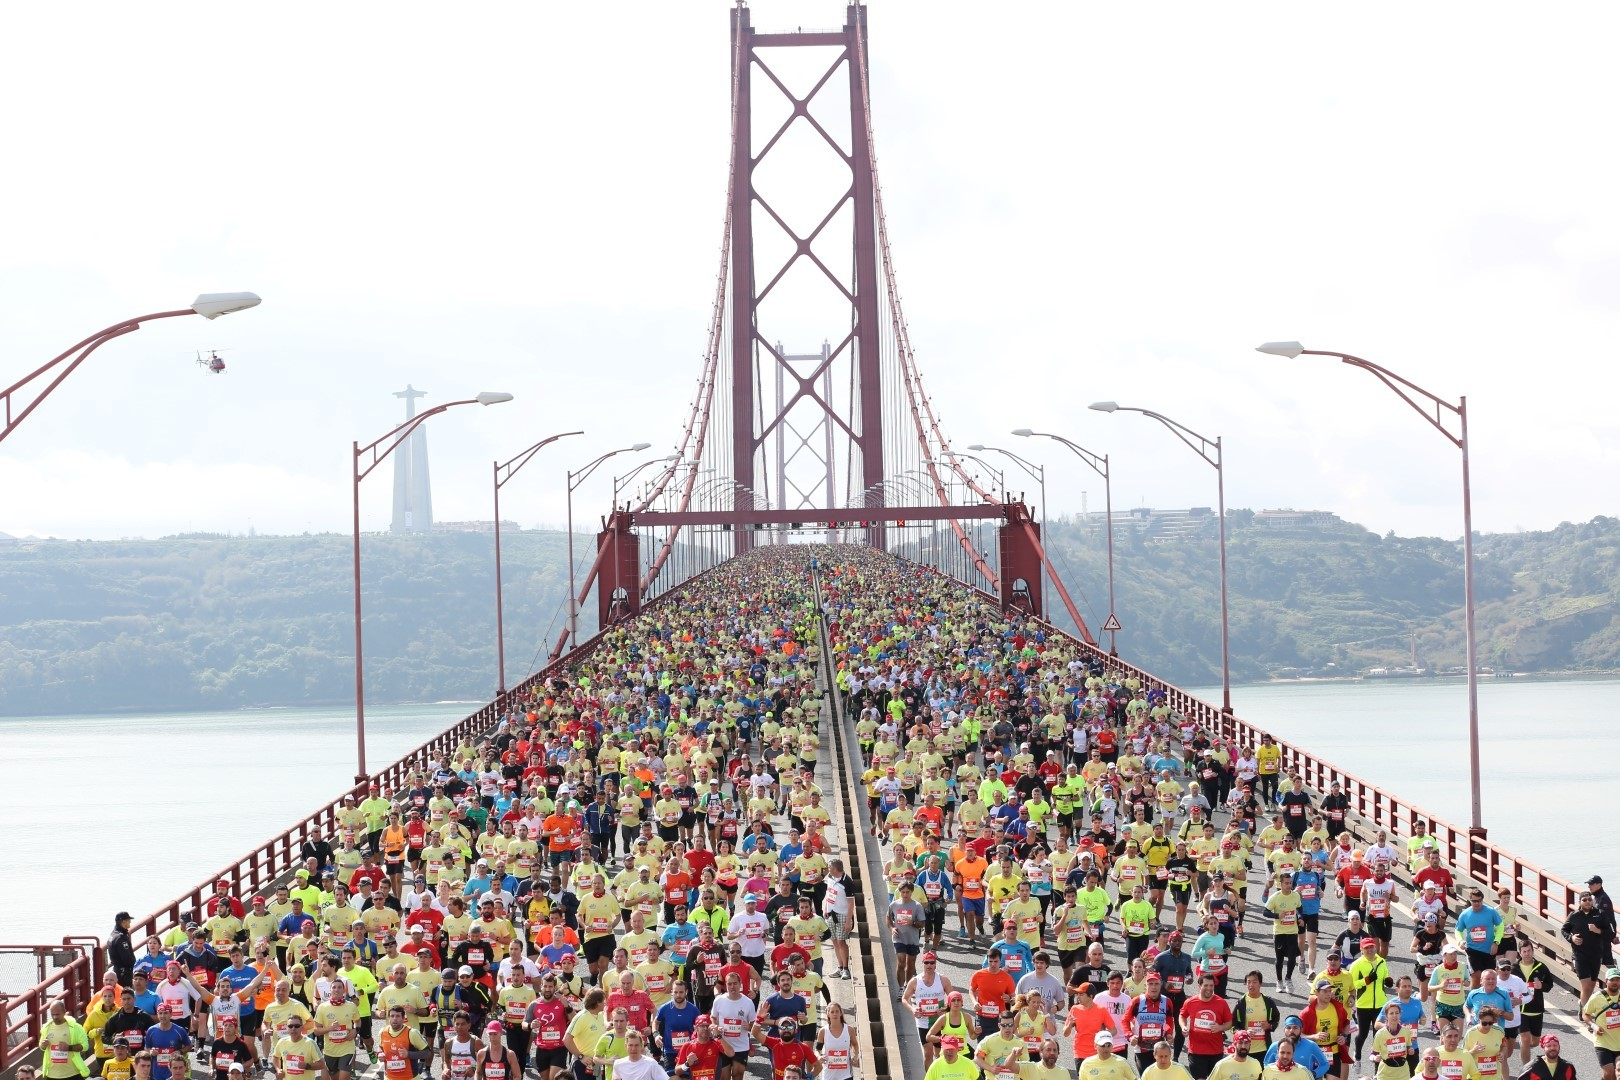 The Lisbon Half Marathon, originally scheduled for March 22, is now postponed to September 5 2020 due to coronavirus